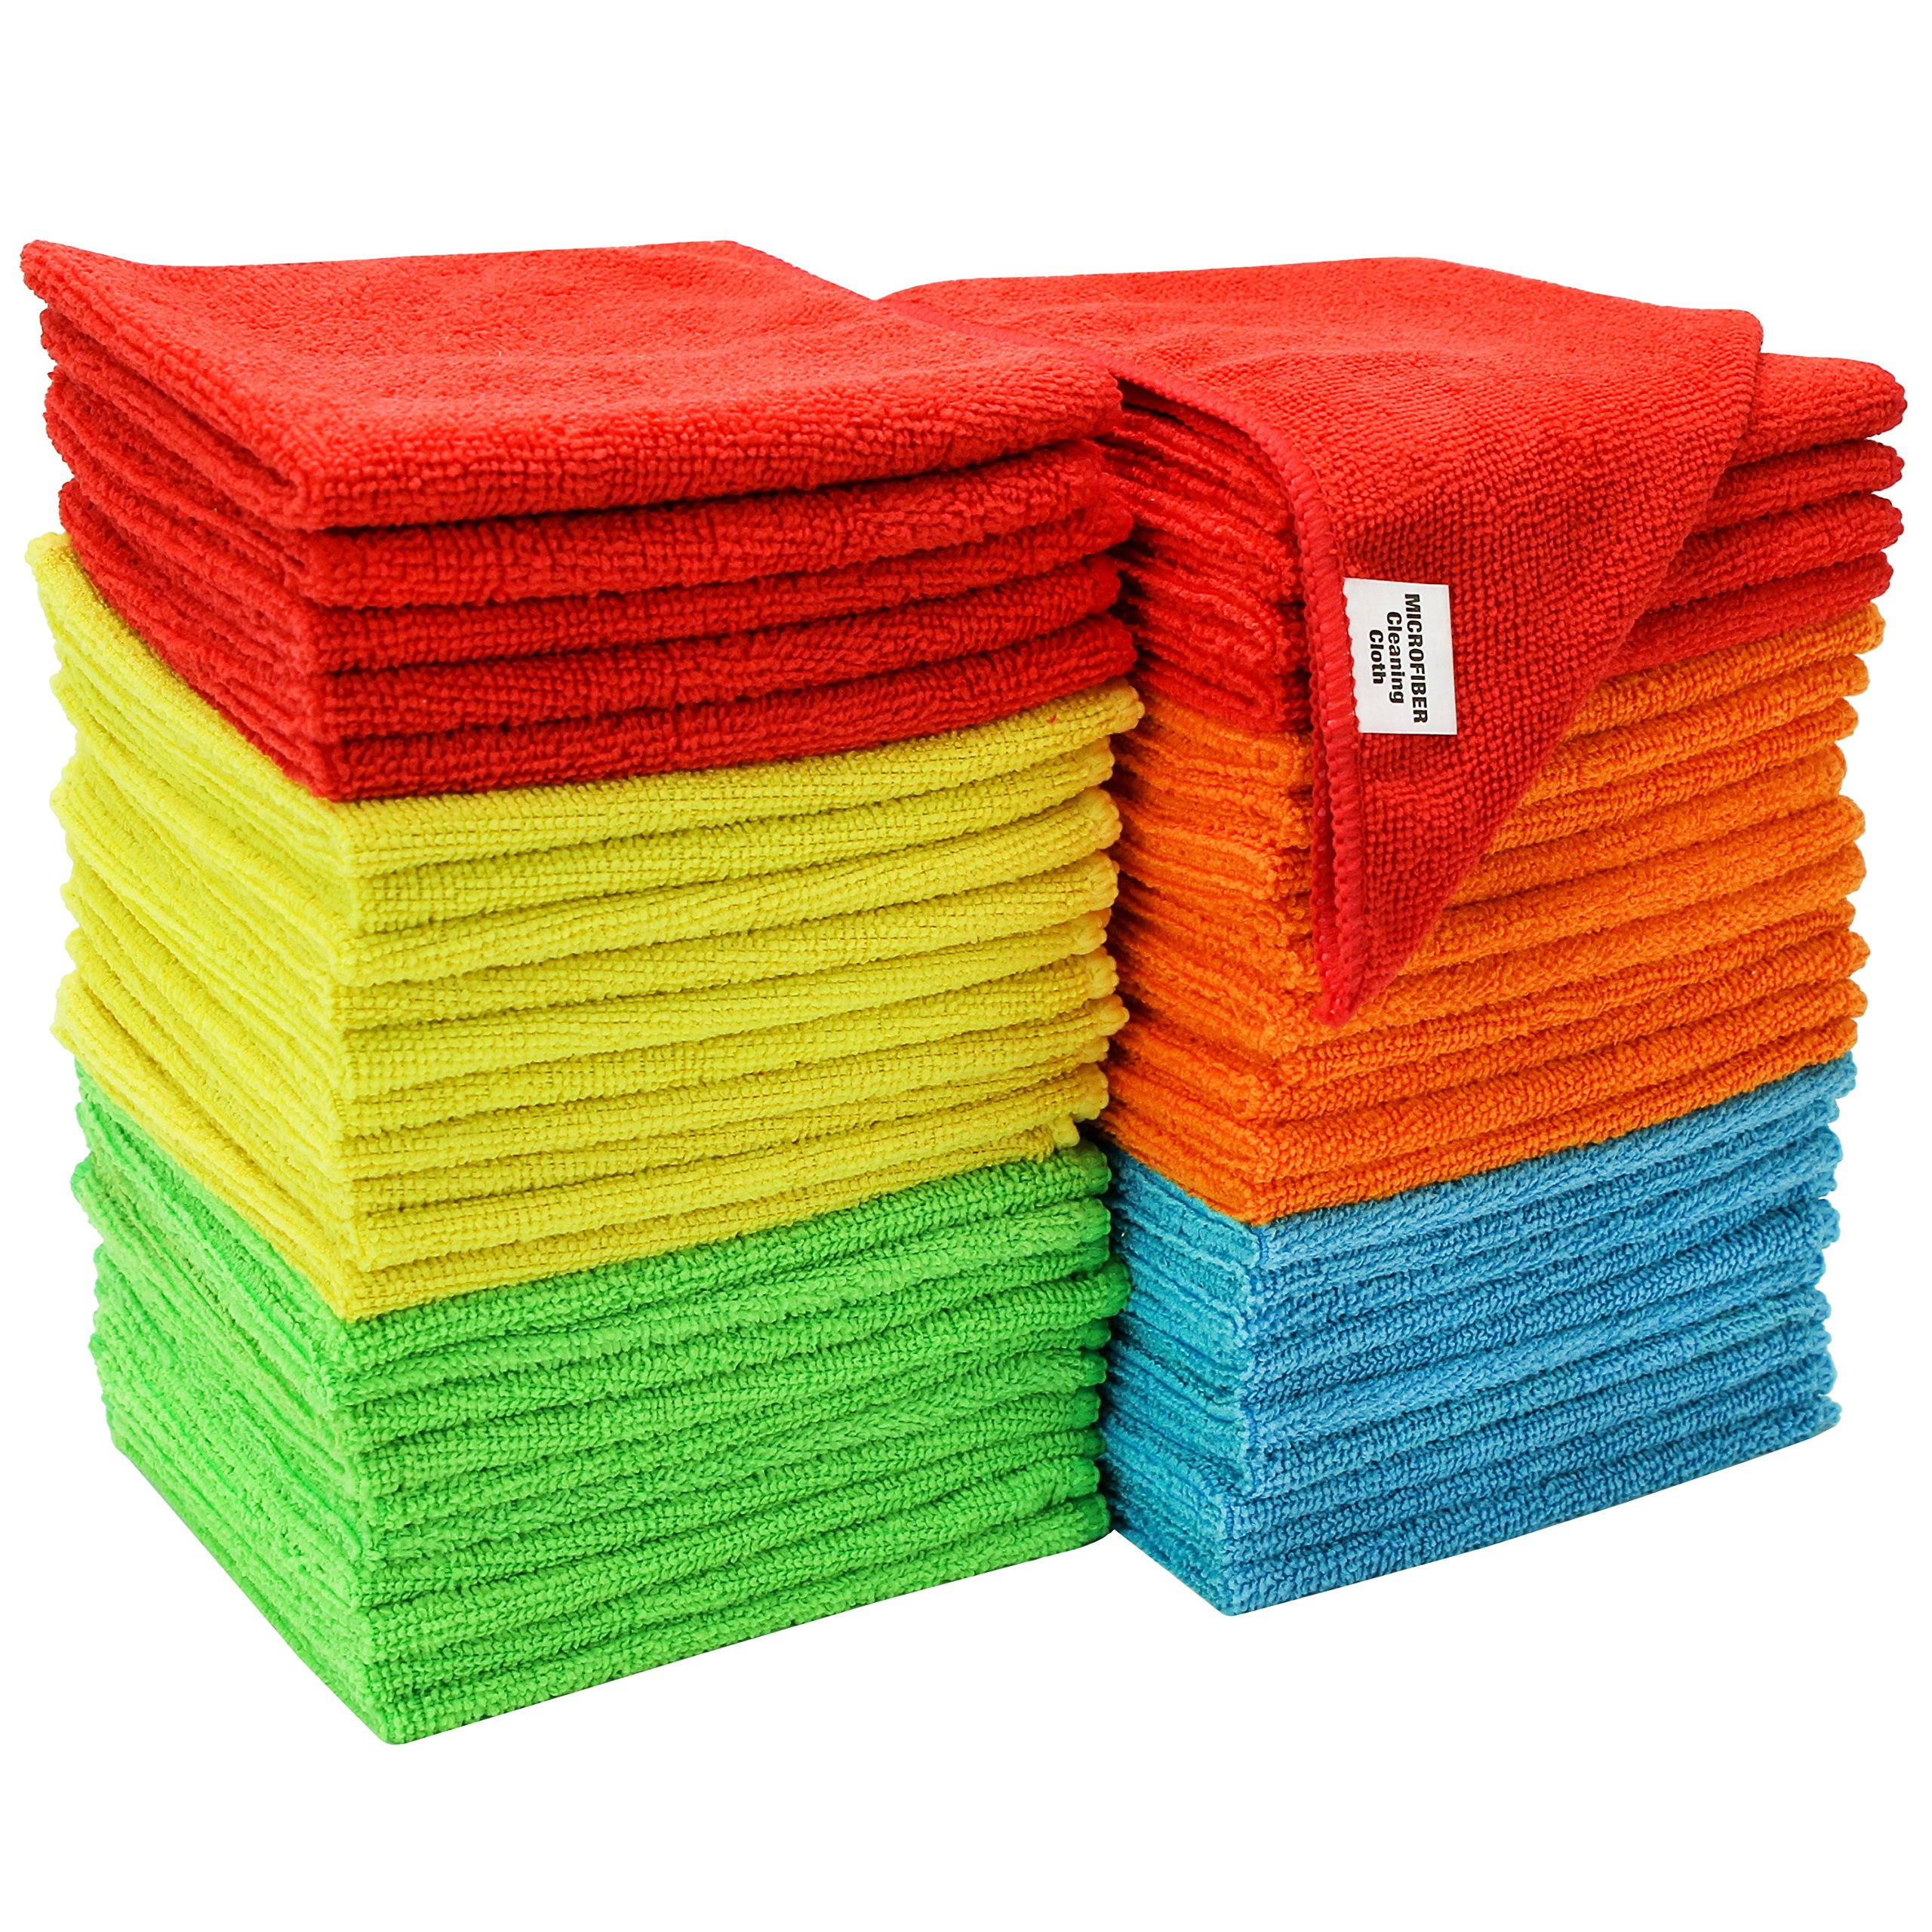 S & T Bulk Microfiber Kitchen, House, Car Cleaning Cloths - 50 Pack, 11.5'' x 11.5''